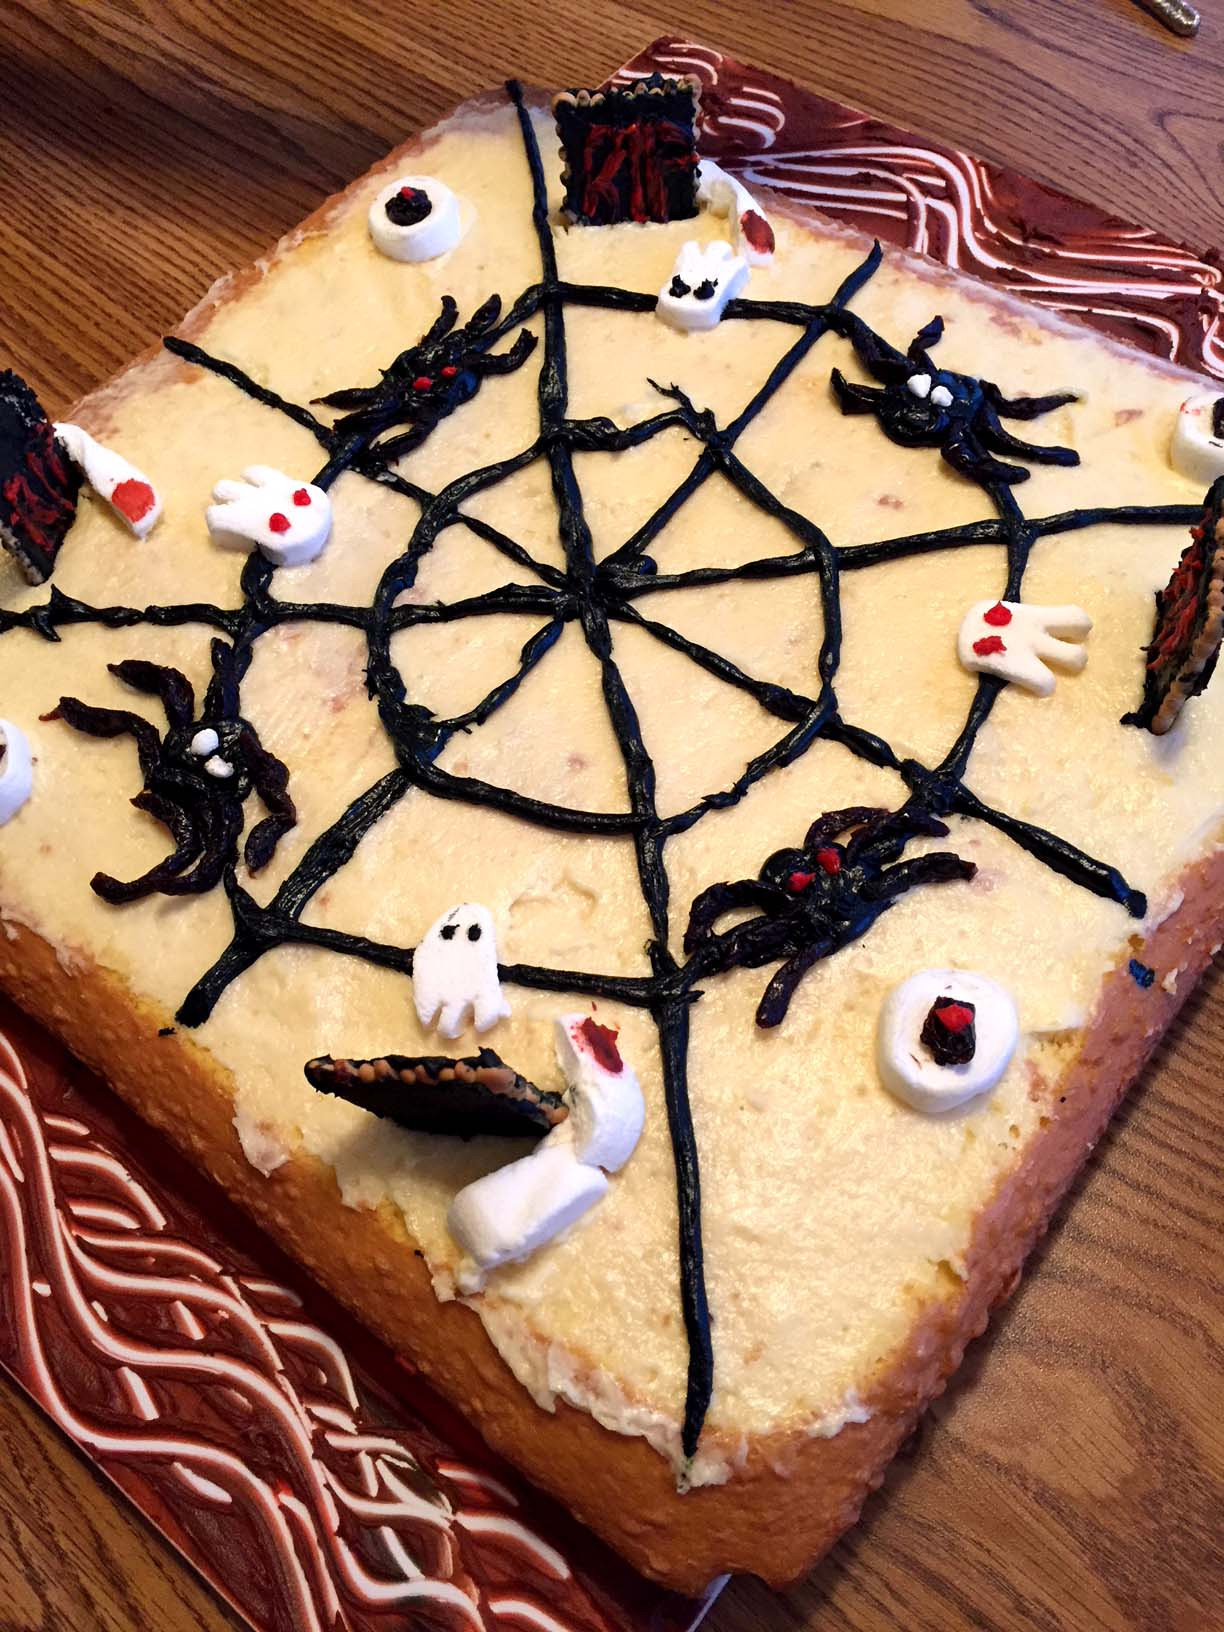 Halloween Cakes Decorations Ideas  Easy Halloween Cake Decorating Ideas For Spooky Cake